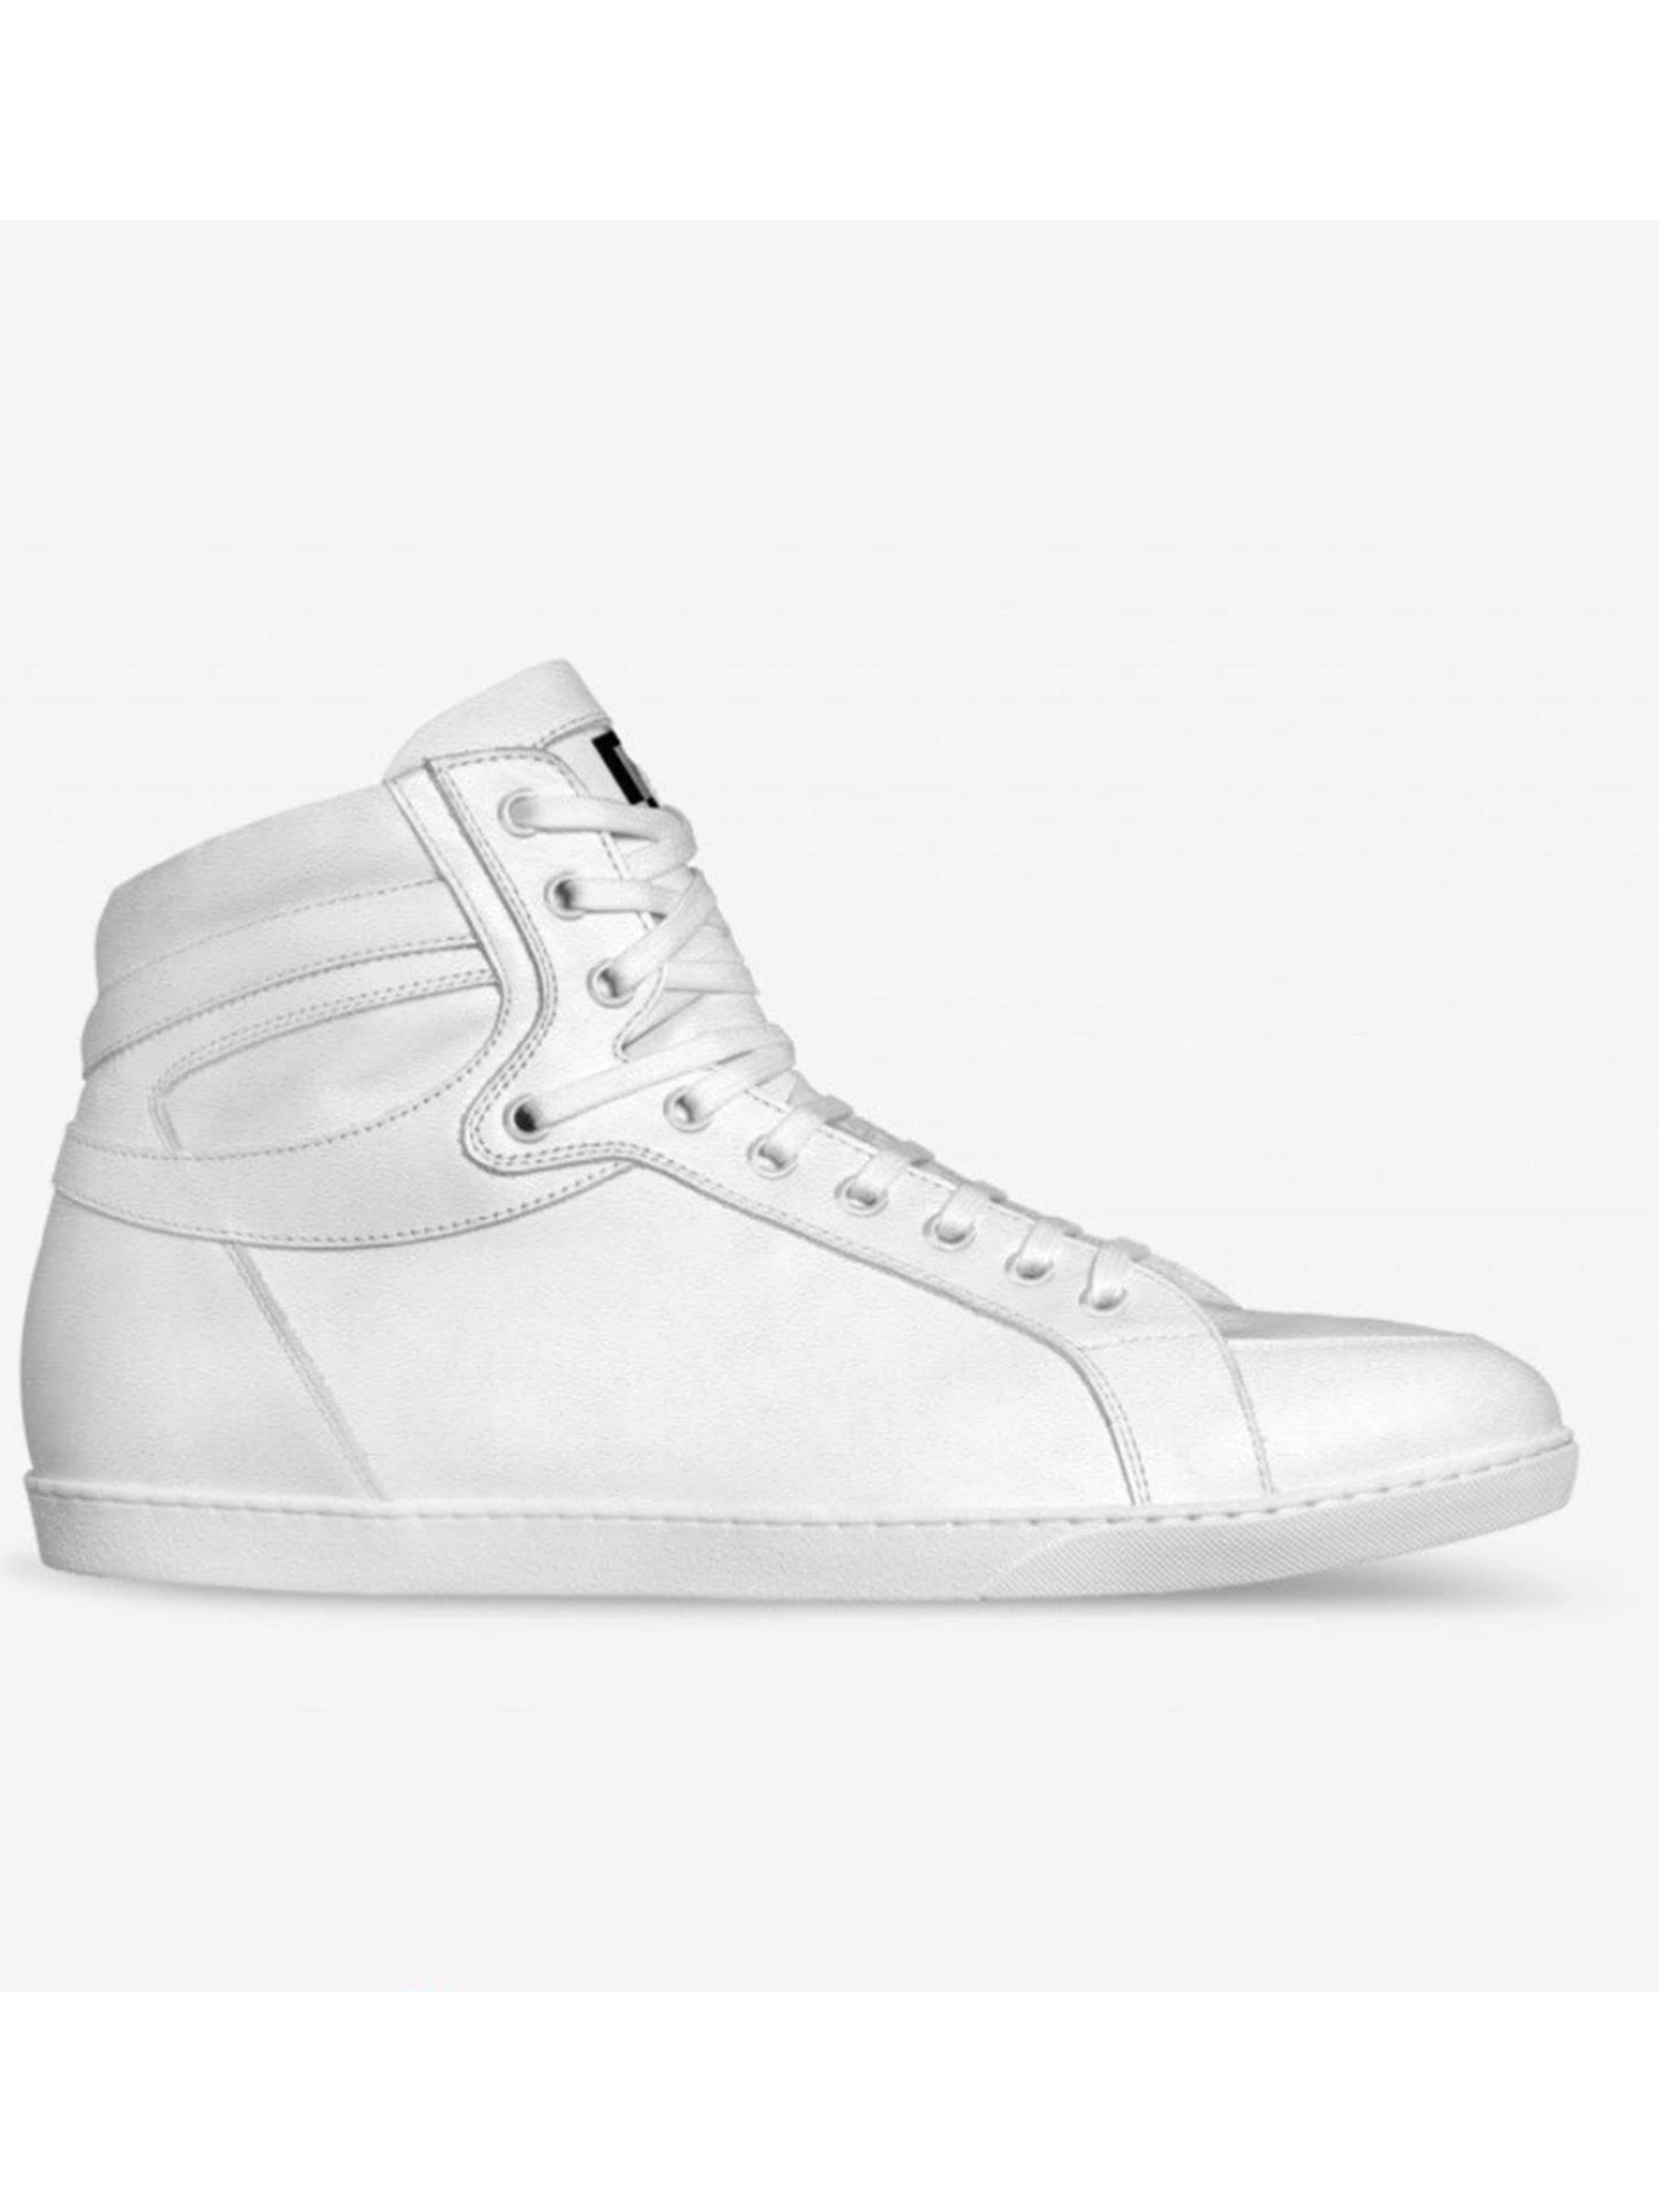 All White Brit Boss High Tops - Brit Boss